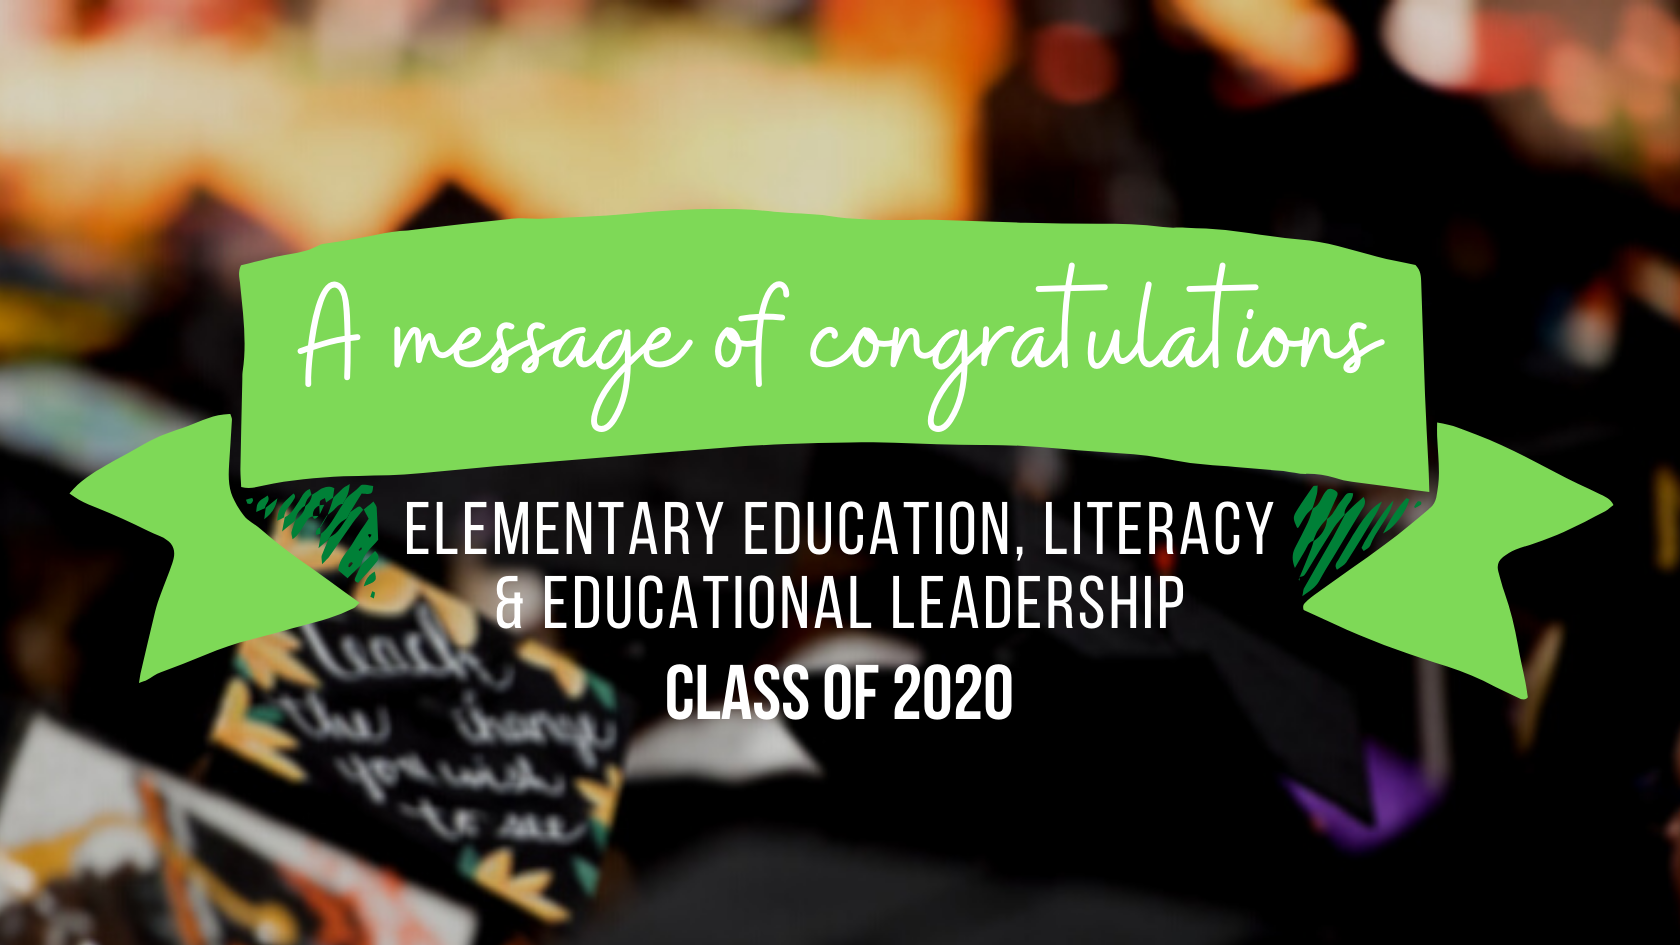 a message of congratulations from elementary education, literacy and educational leadership class of 2020